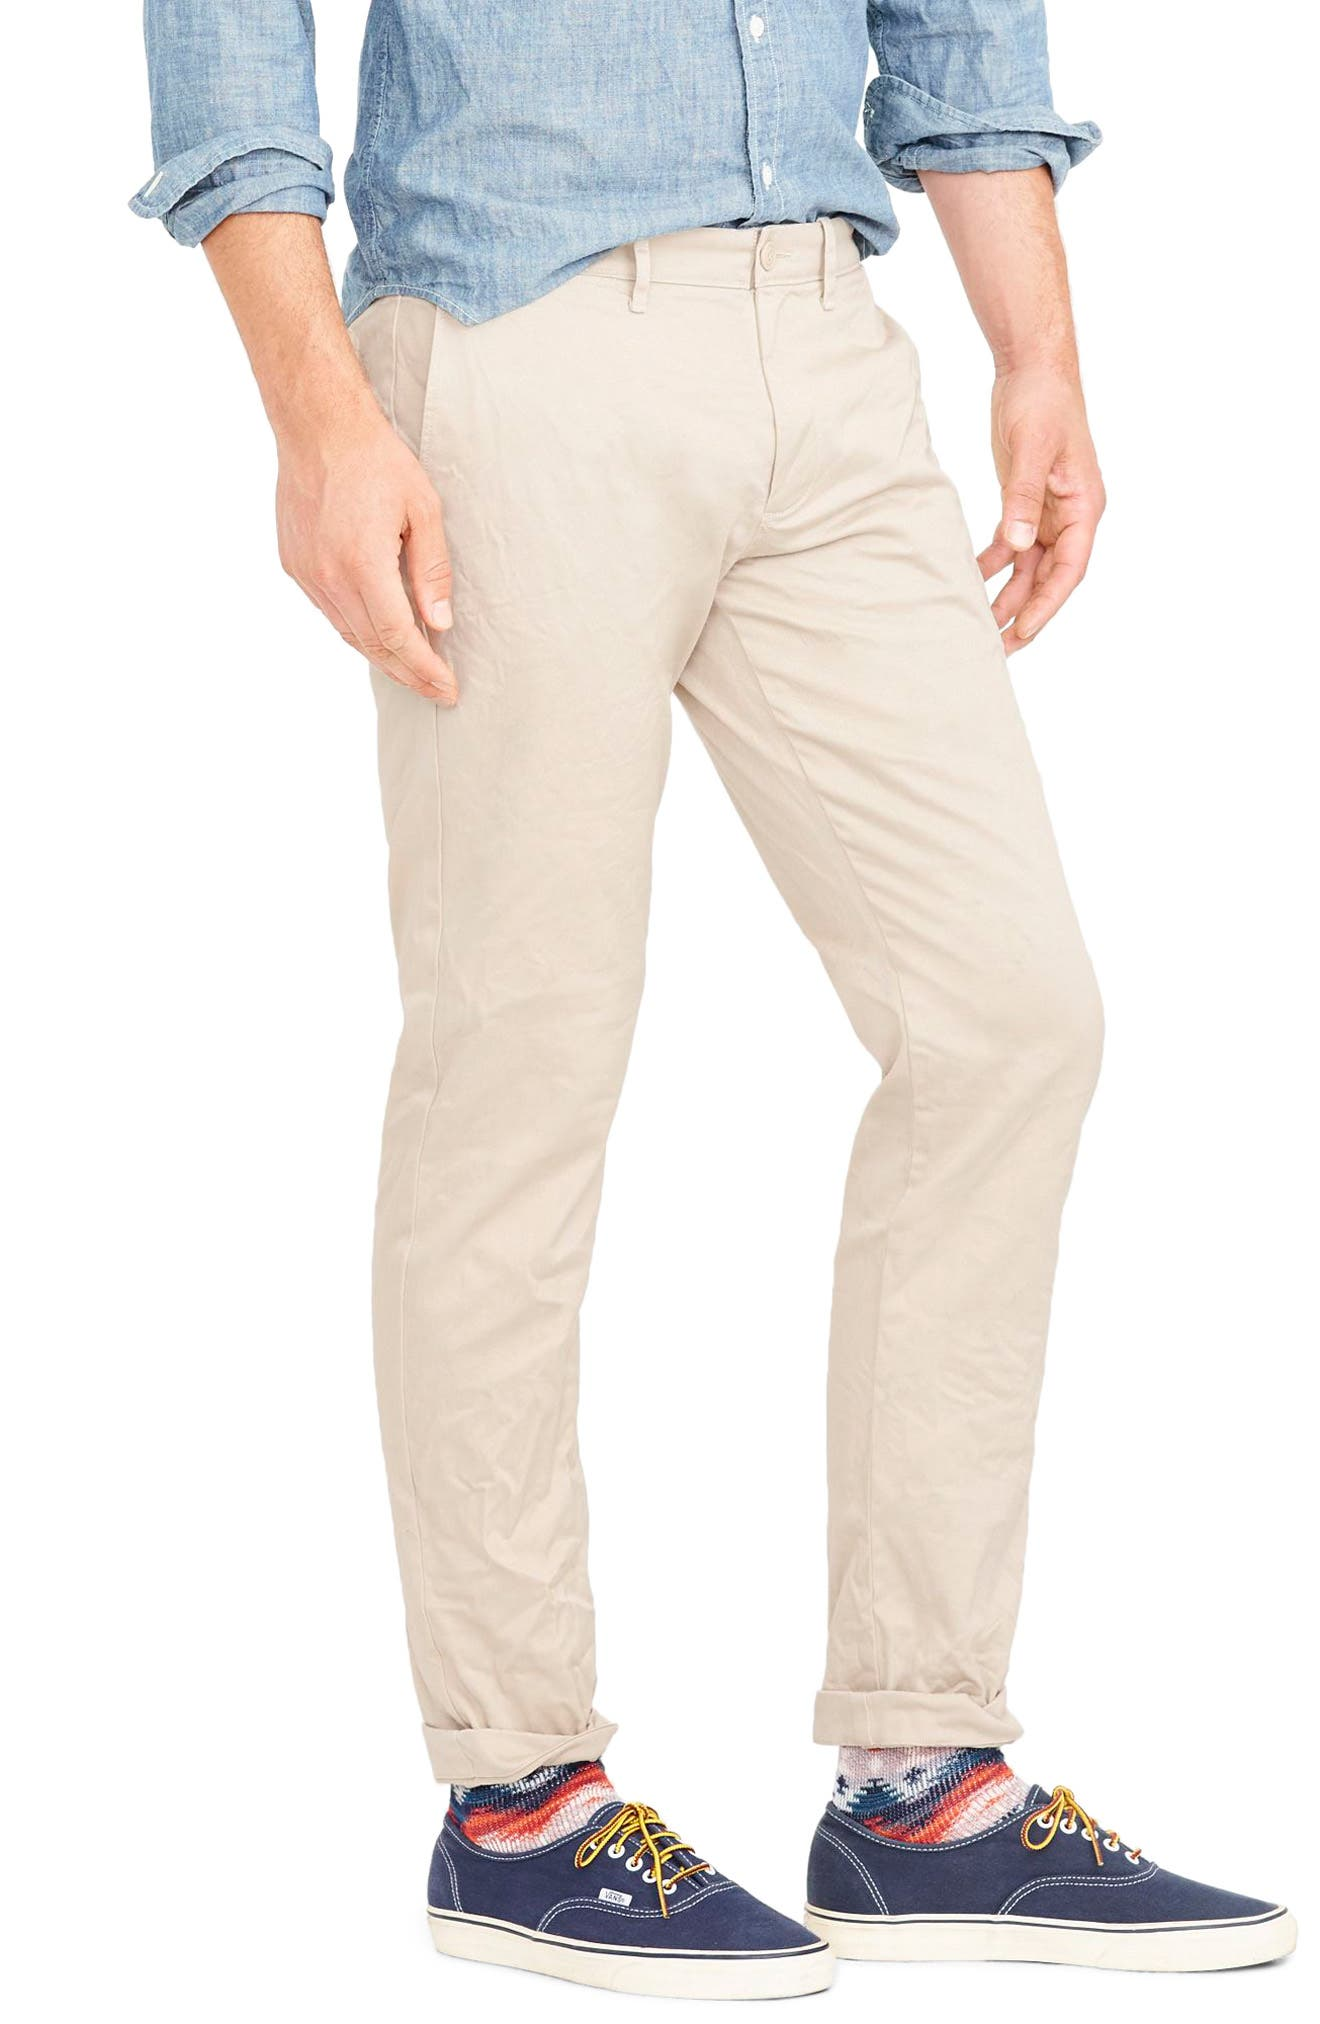 484 Slim Fit Stretch Chino Pants,                             Alternate thumbnail 26, color,